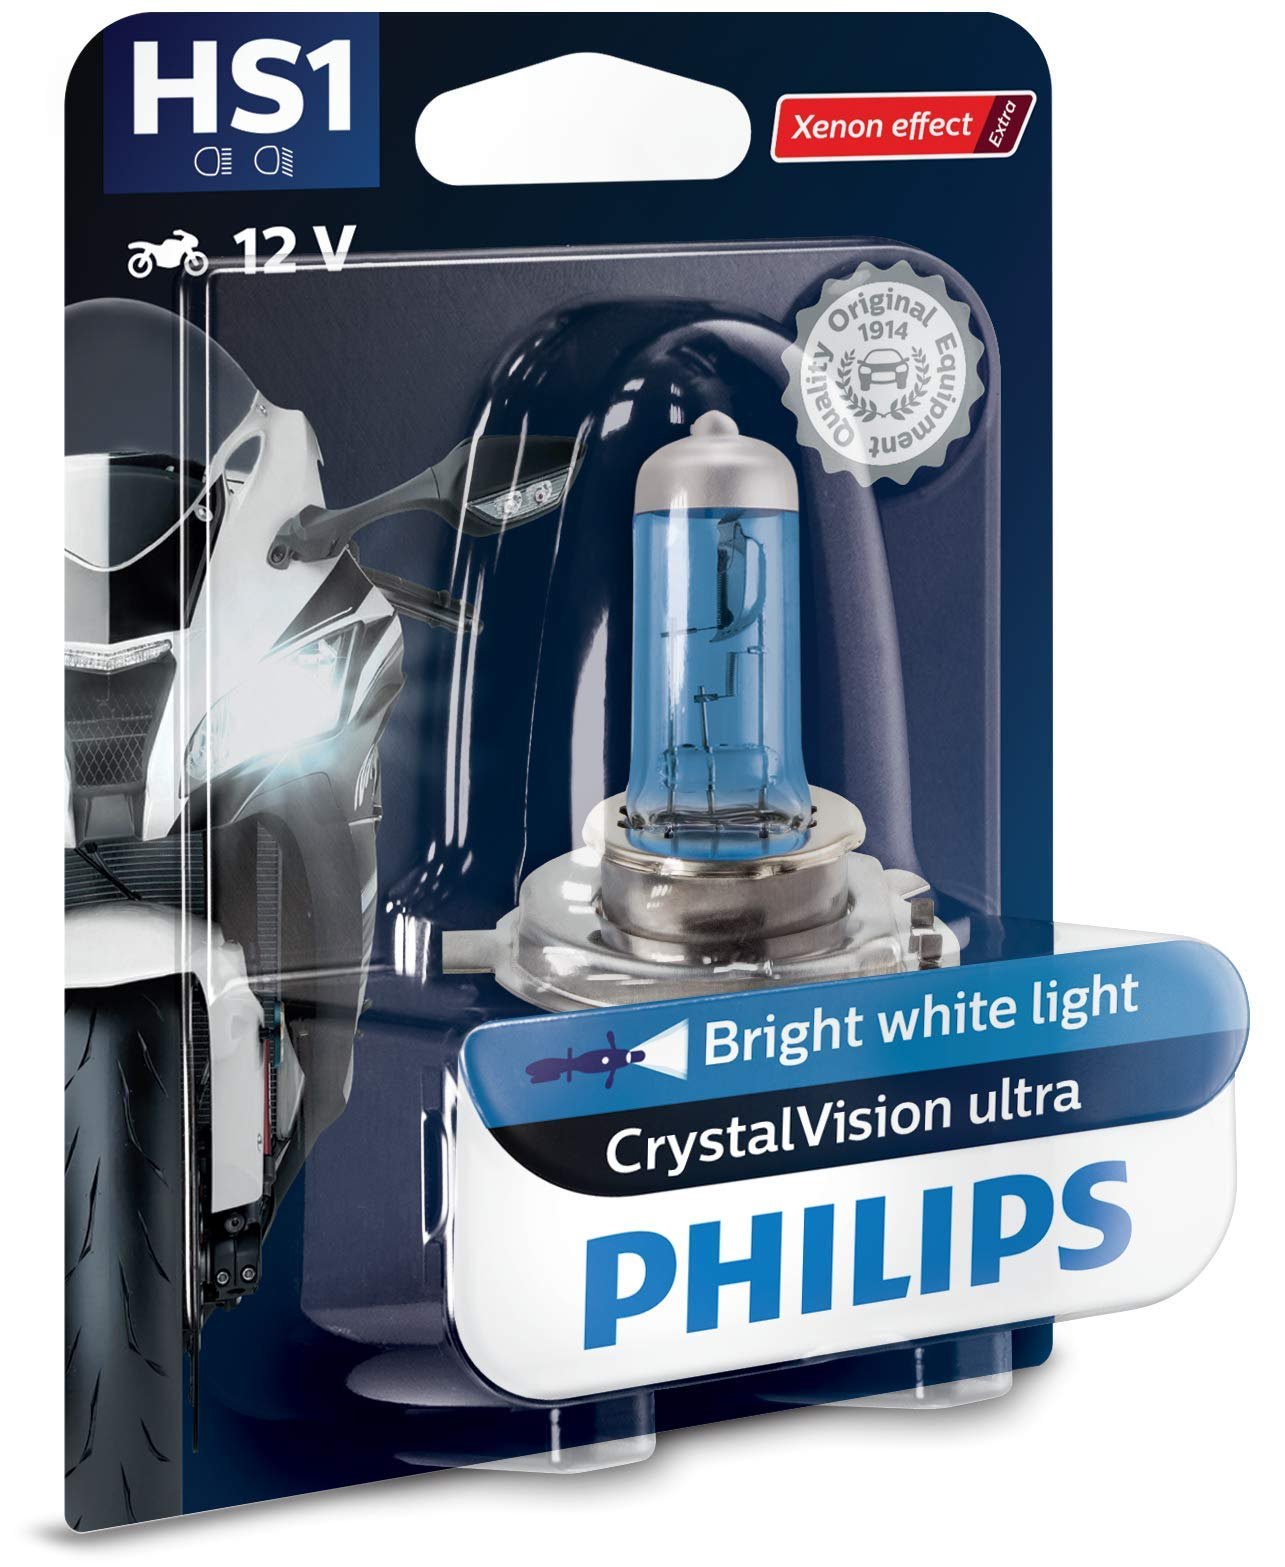 Philips 12636BVBW CrystalVision ultra Moto HS1 Motorrad-Scheinwerferlampe, 1 Stück von Philips automotive lighting